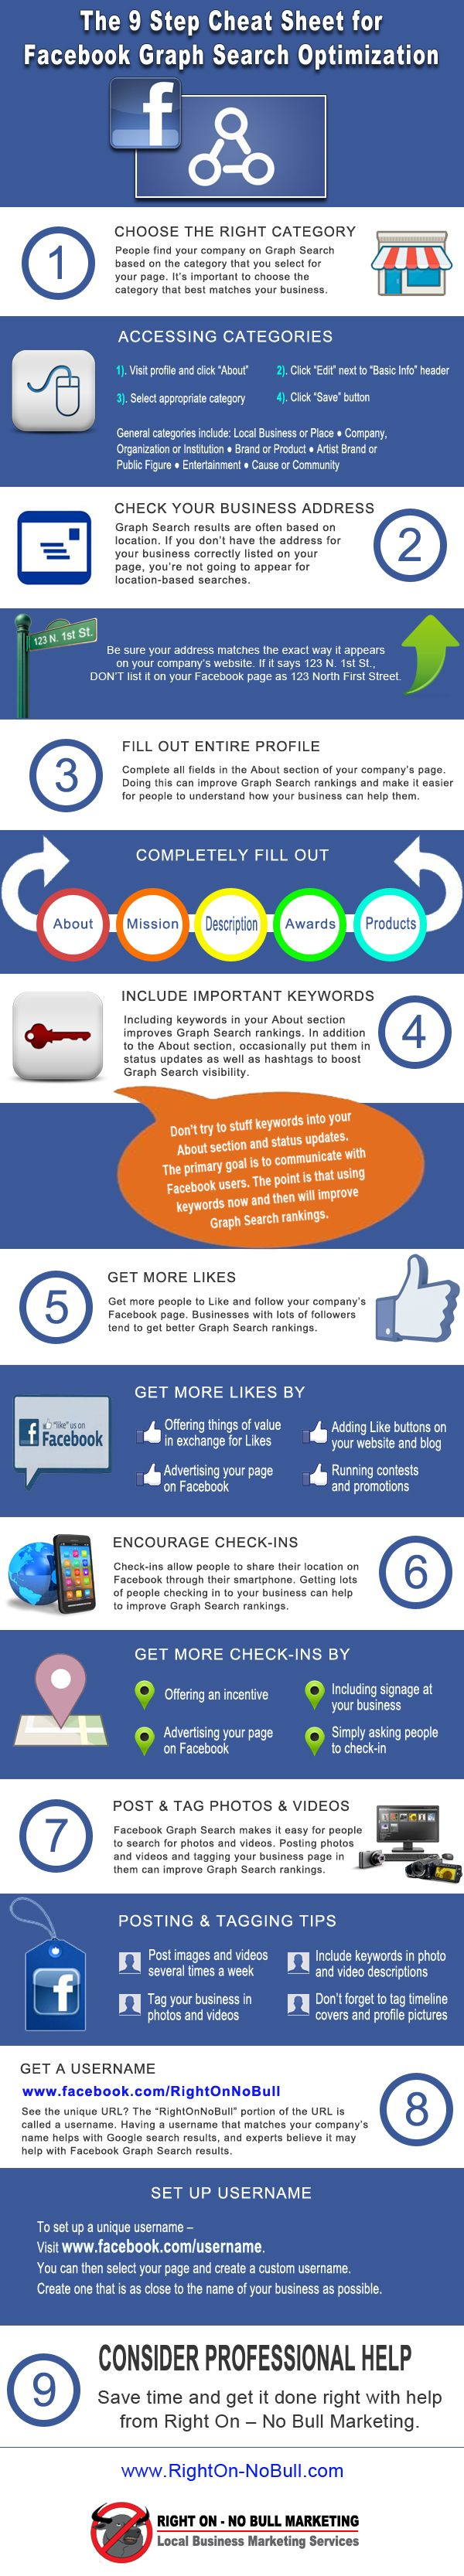 Optimize Your Company's #FacebookPage For #GraphSearch  www.digitalinformationworld.com/2013/08/optimize-your-business-facebook-page-for-graph-search.html